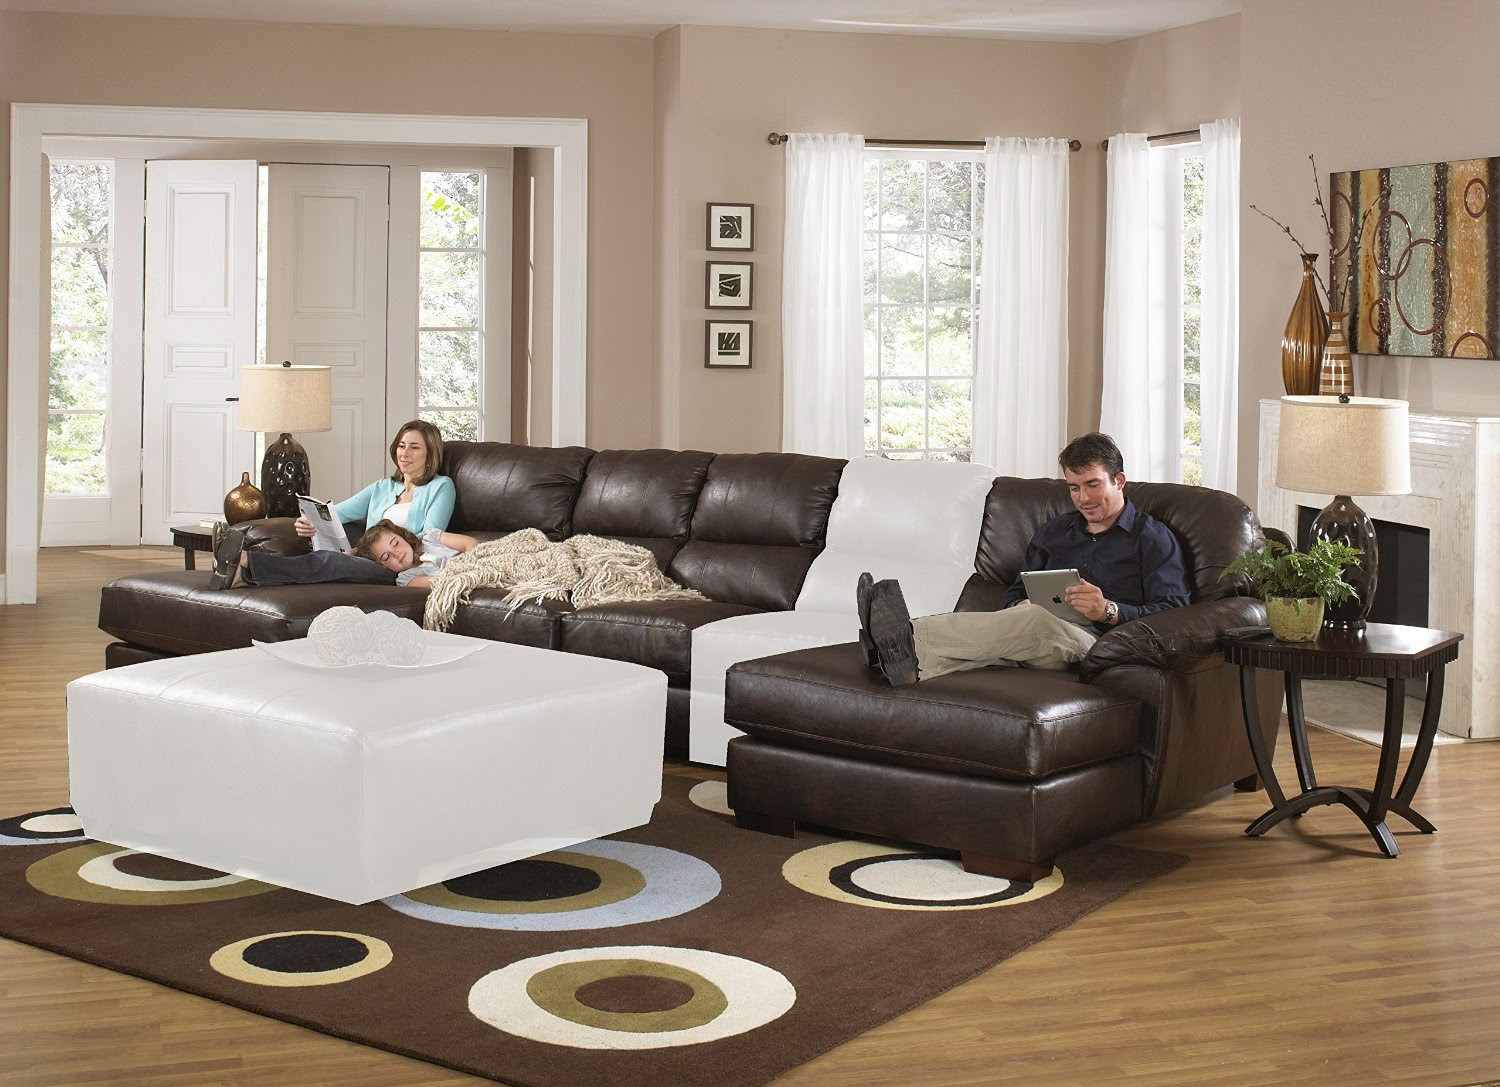 Superieur Sleeper Sectional Sofa U0026 Reclining Loveseat